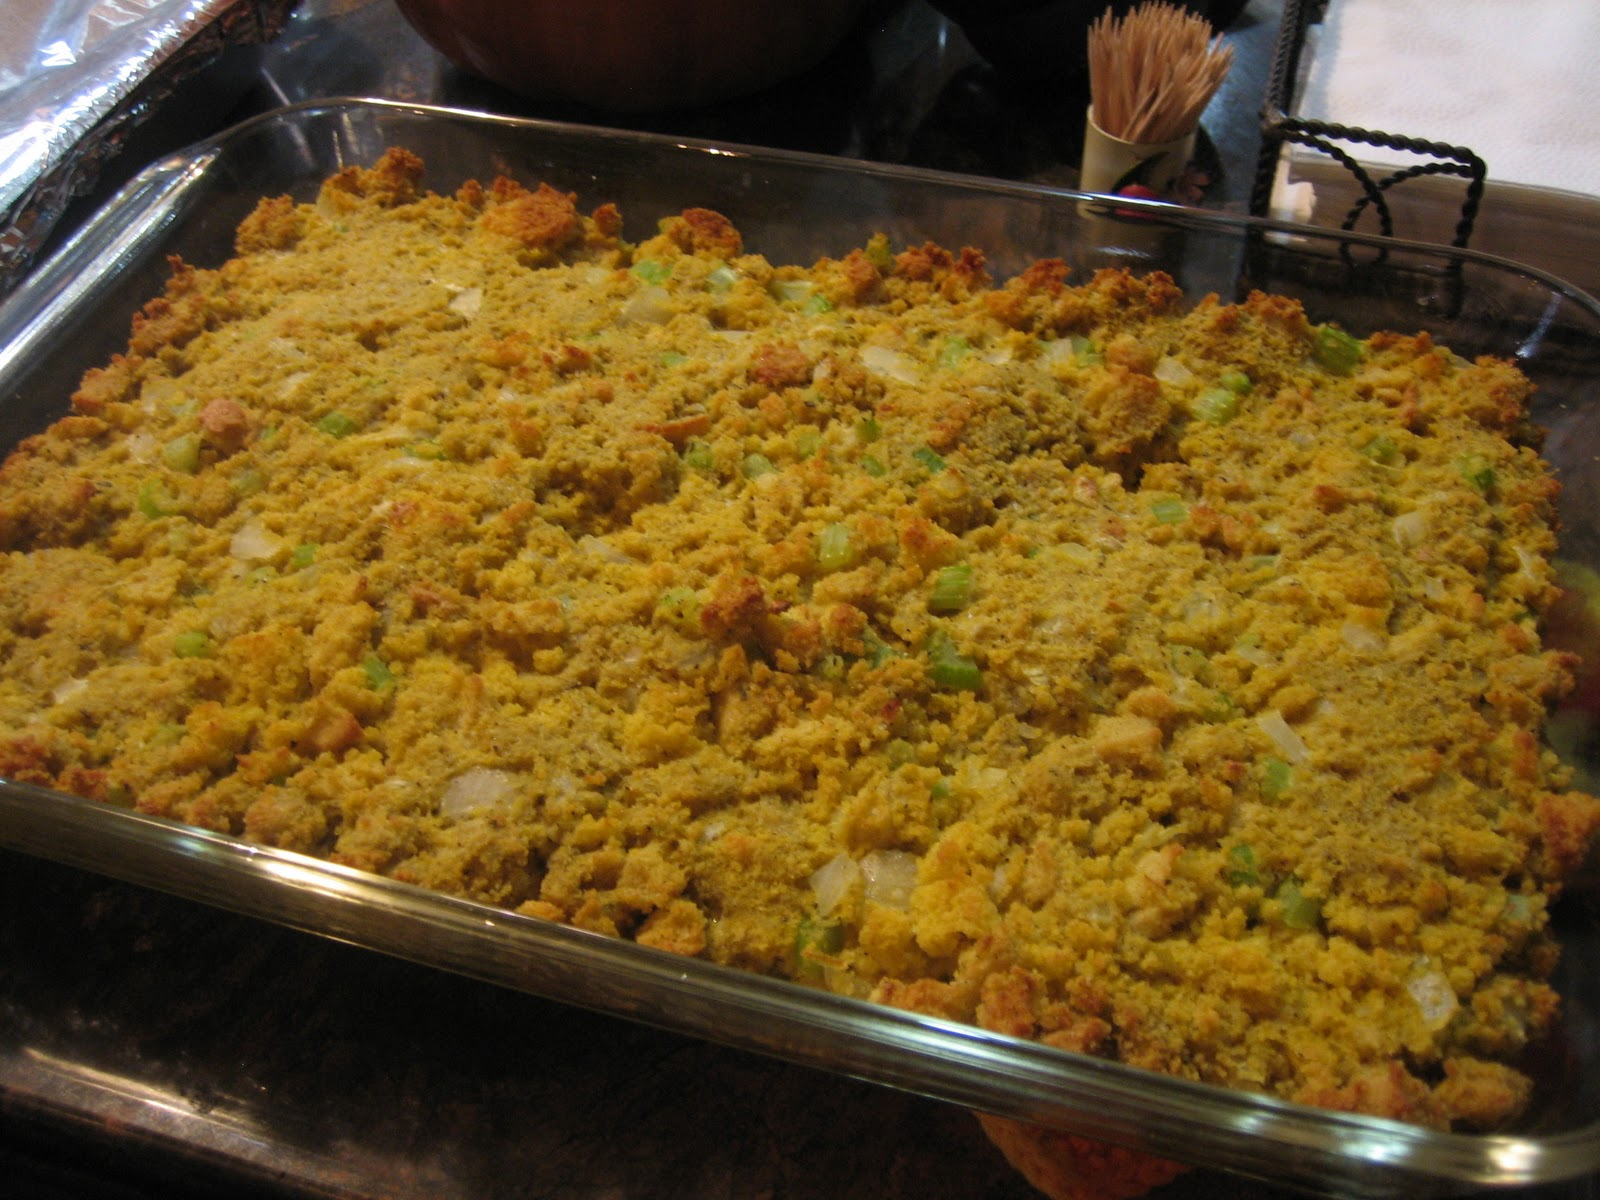 Discovering The Extraordinary: Thanksgiving, Gluten Free